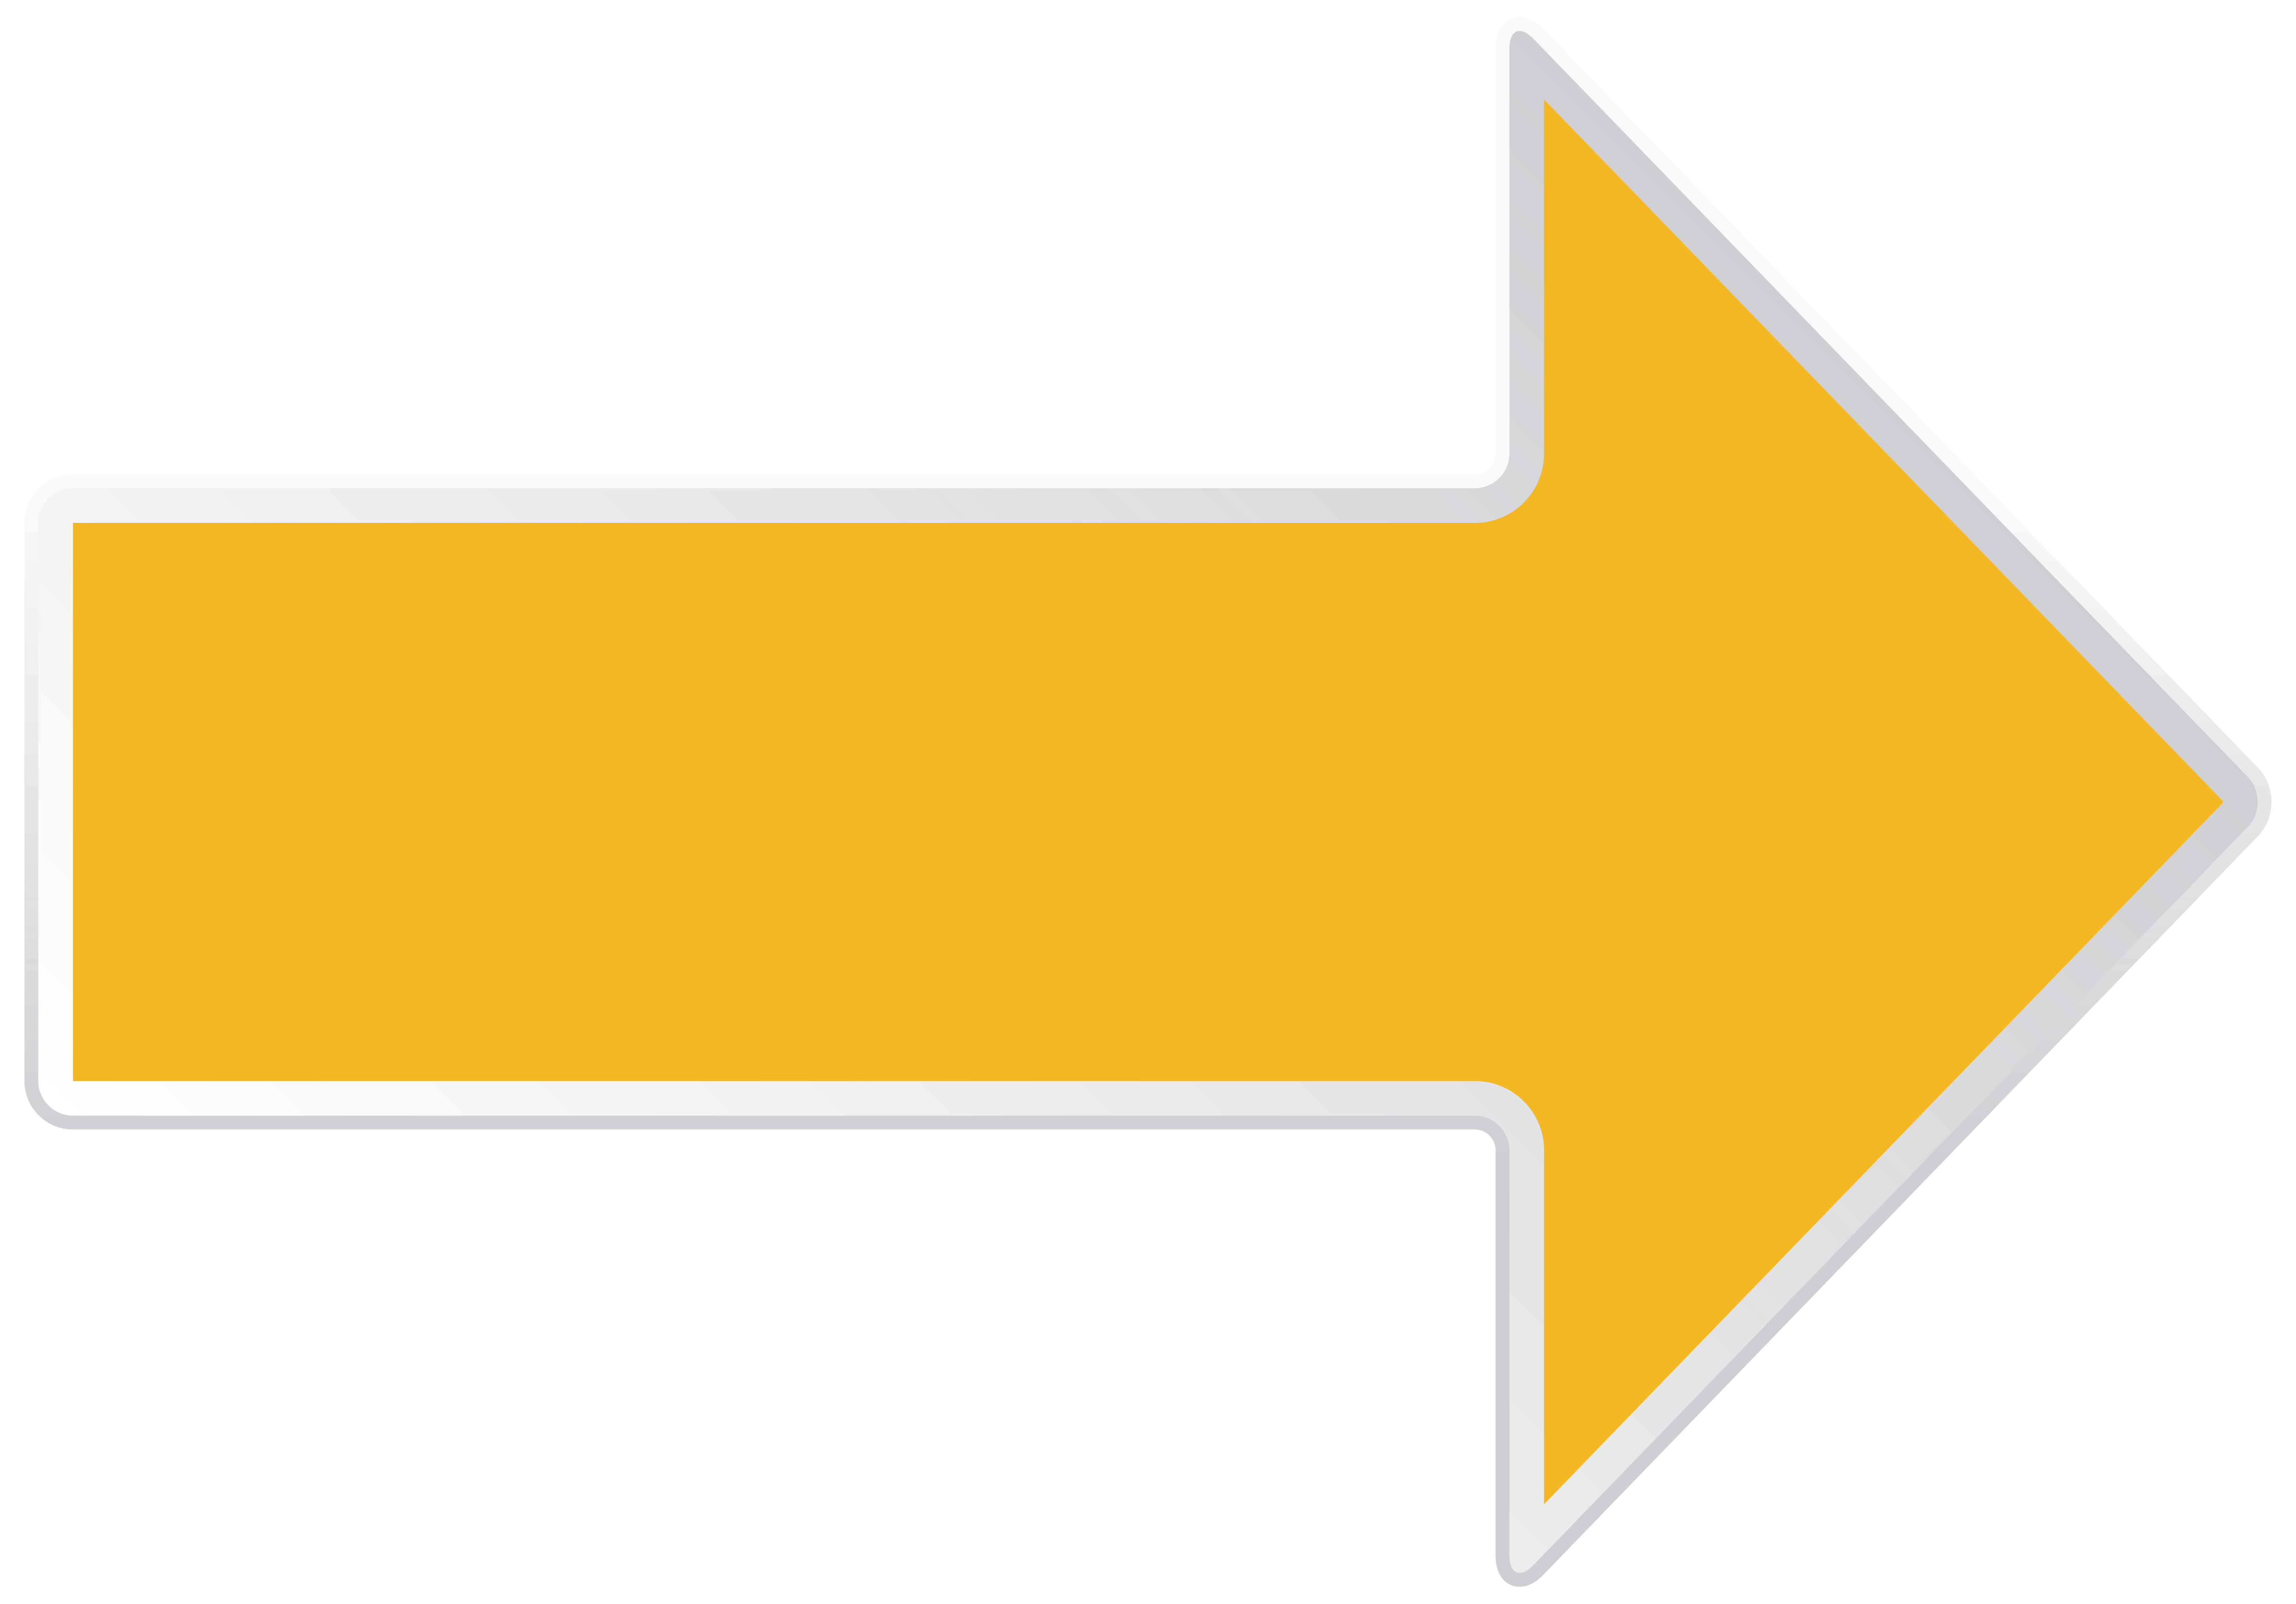 Right Yellow Clipart Arrow Png